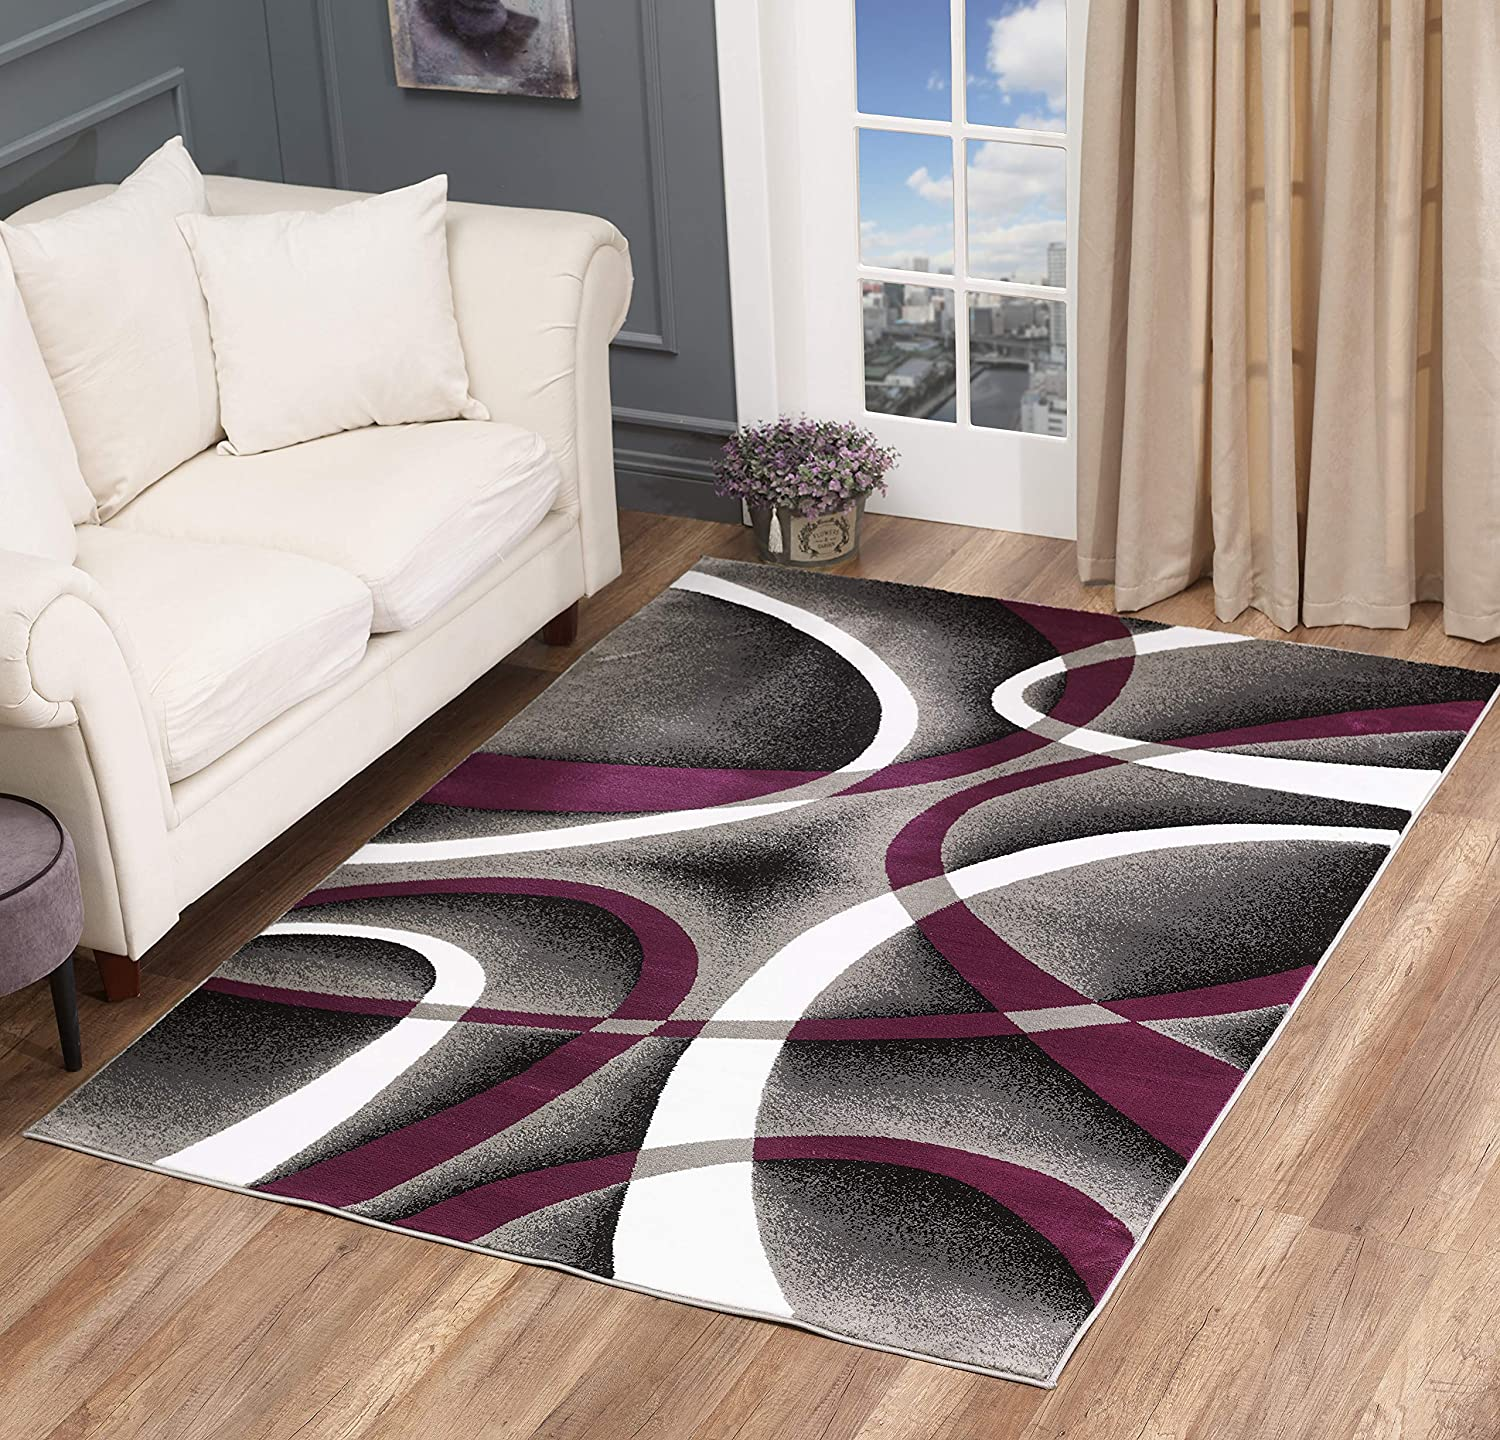 Golden Rugs Modern Area Rug Swirls Carpet Bedroom Living Room Contemporary Dining Accent Sevilla Collection 4816 (5x7, Purple)